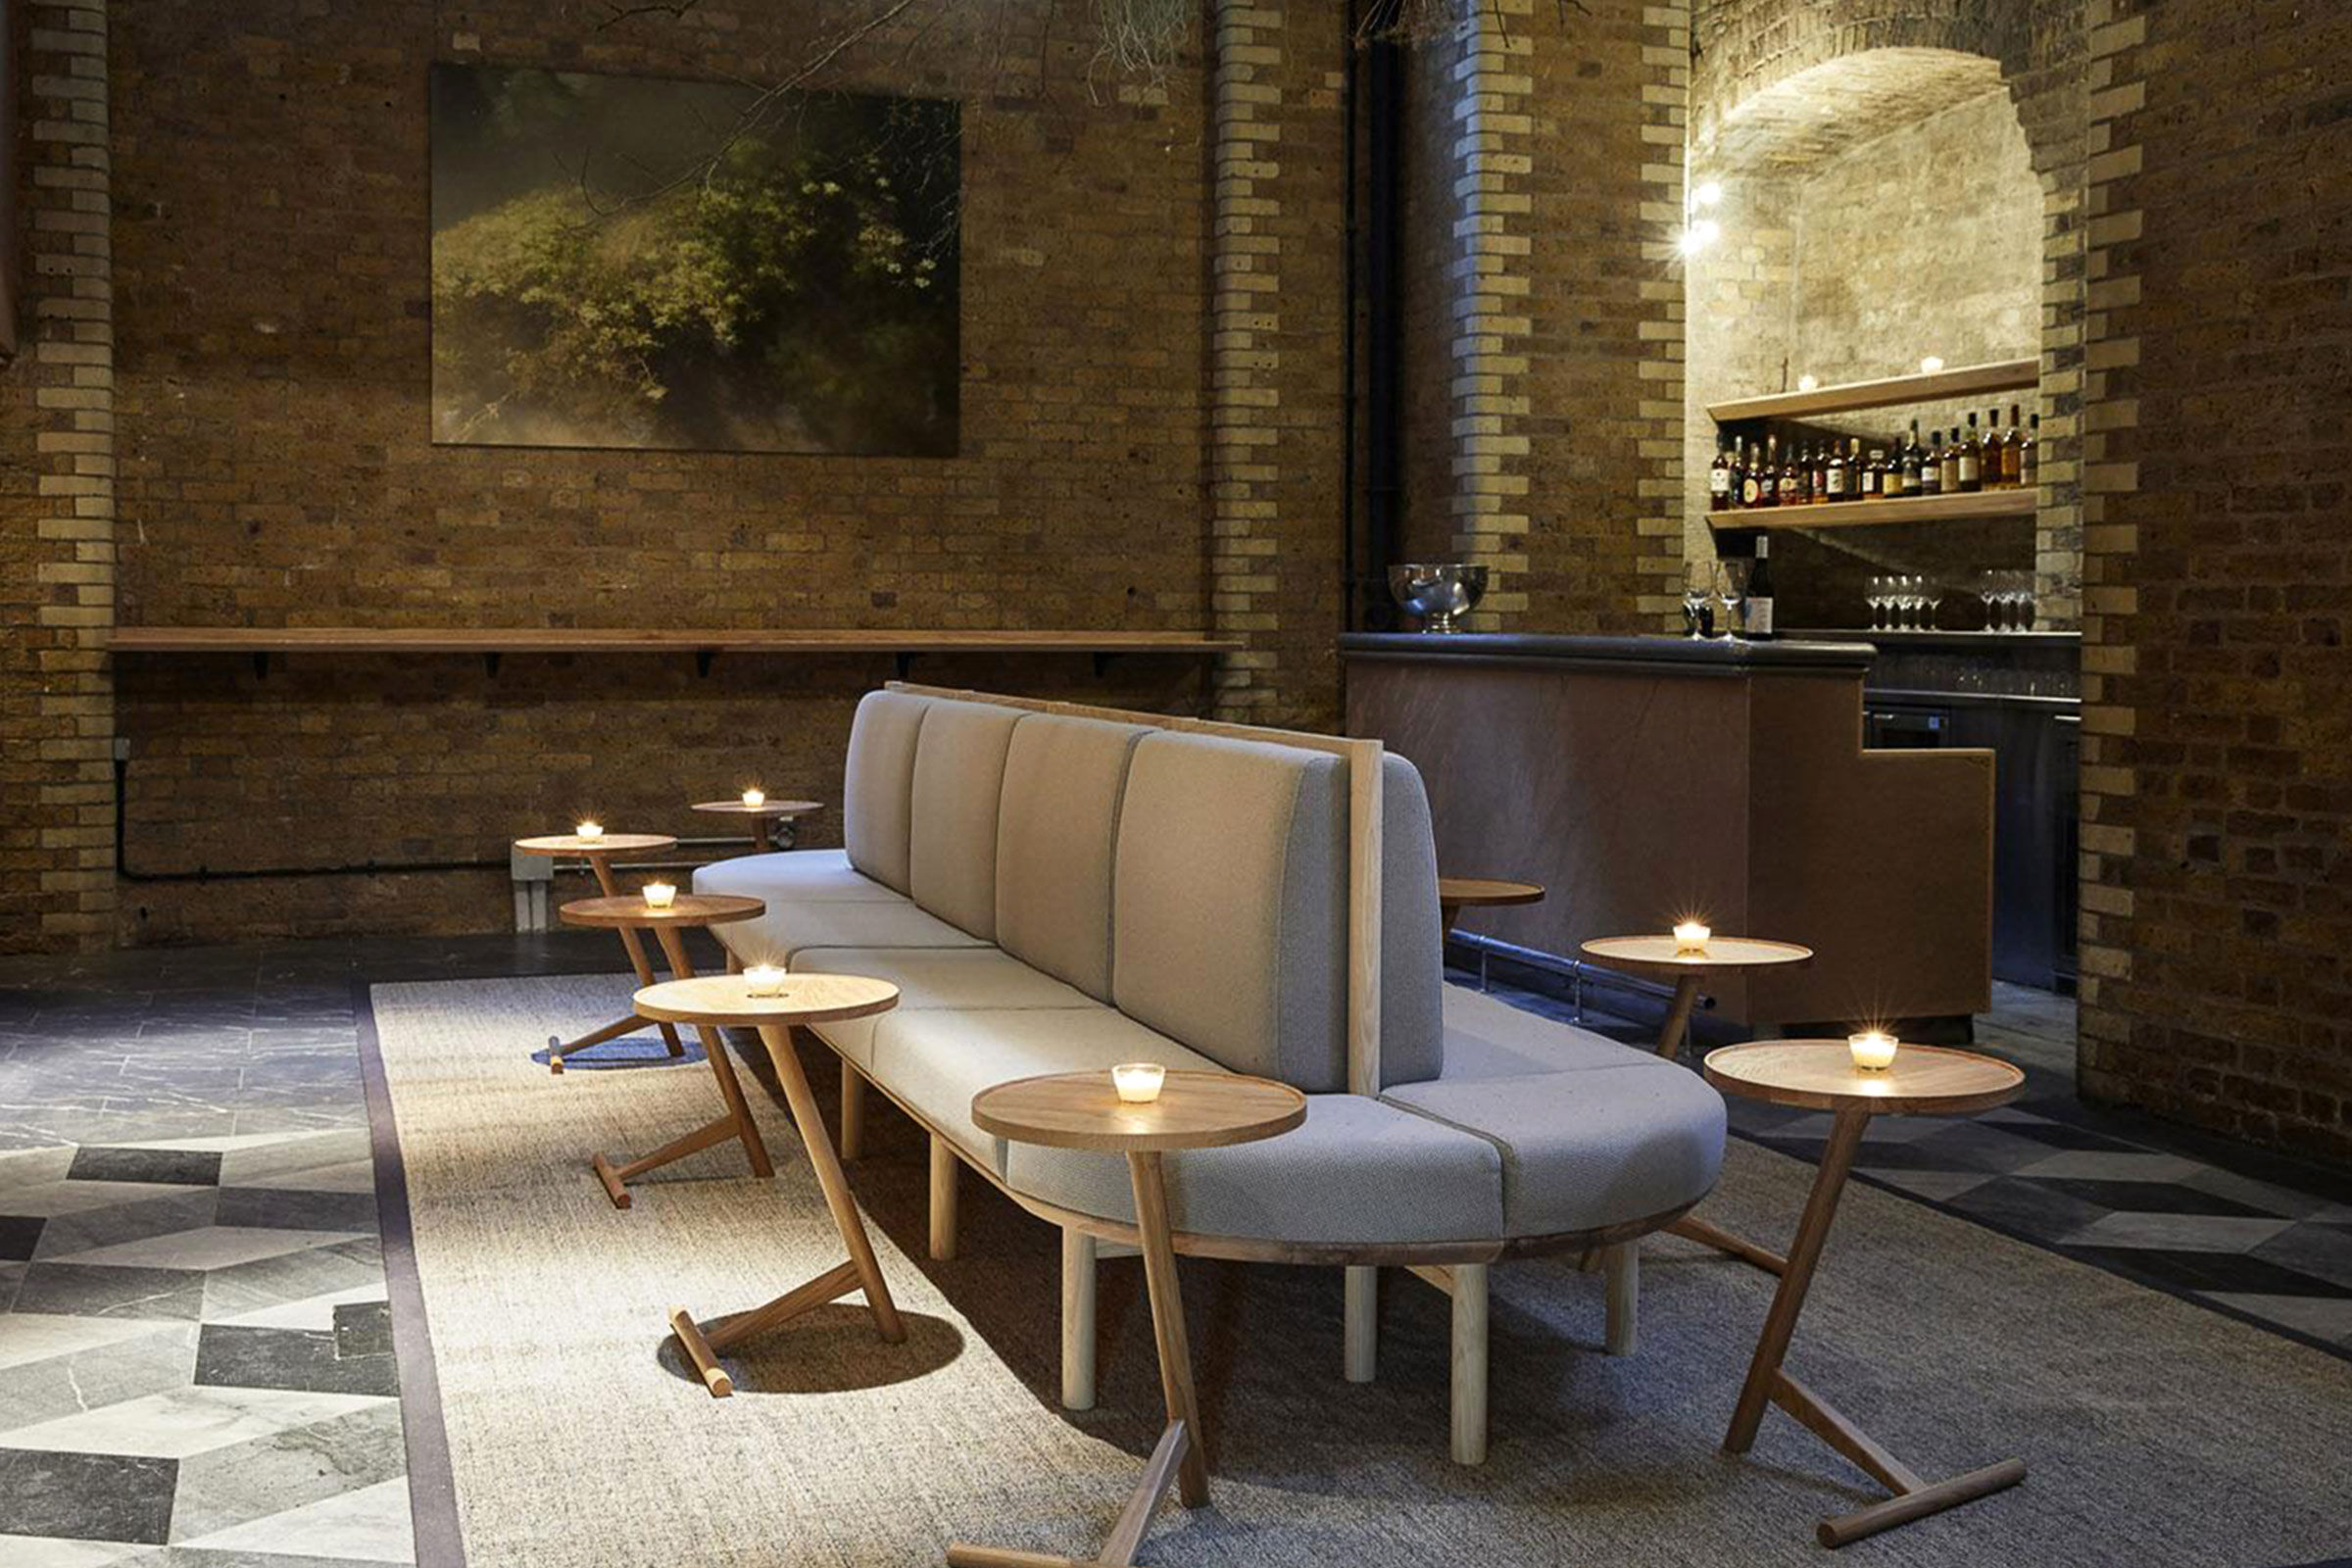 Boundary Hotel London Review - Modern Design - HEY GENTS